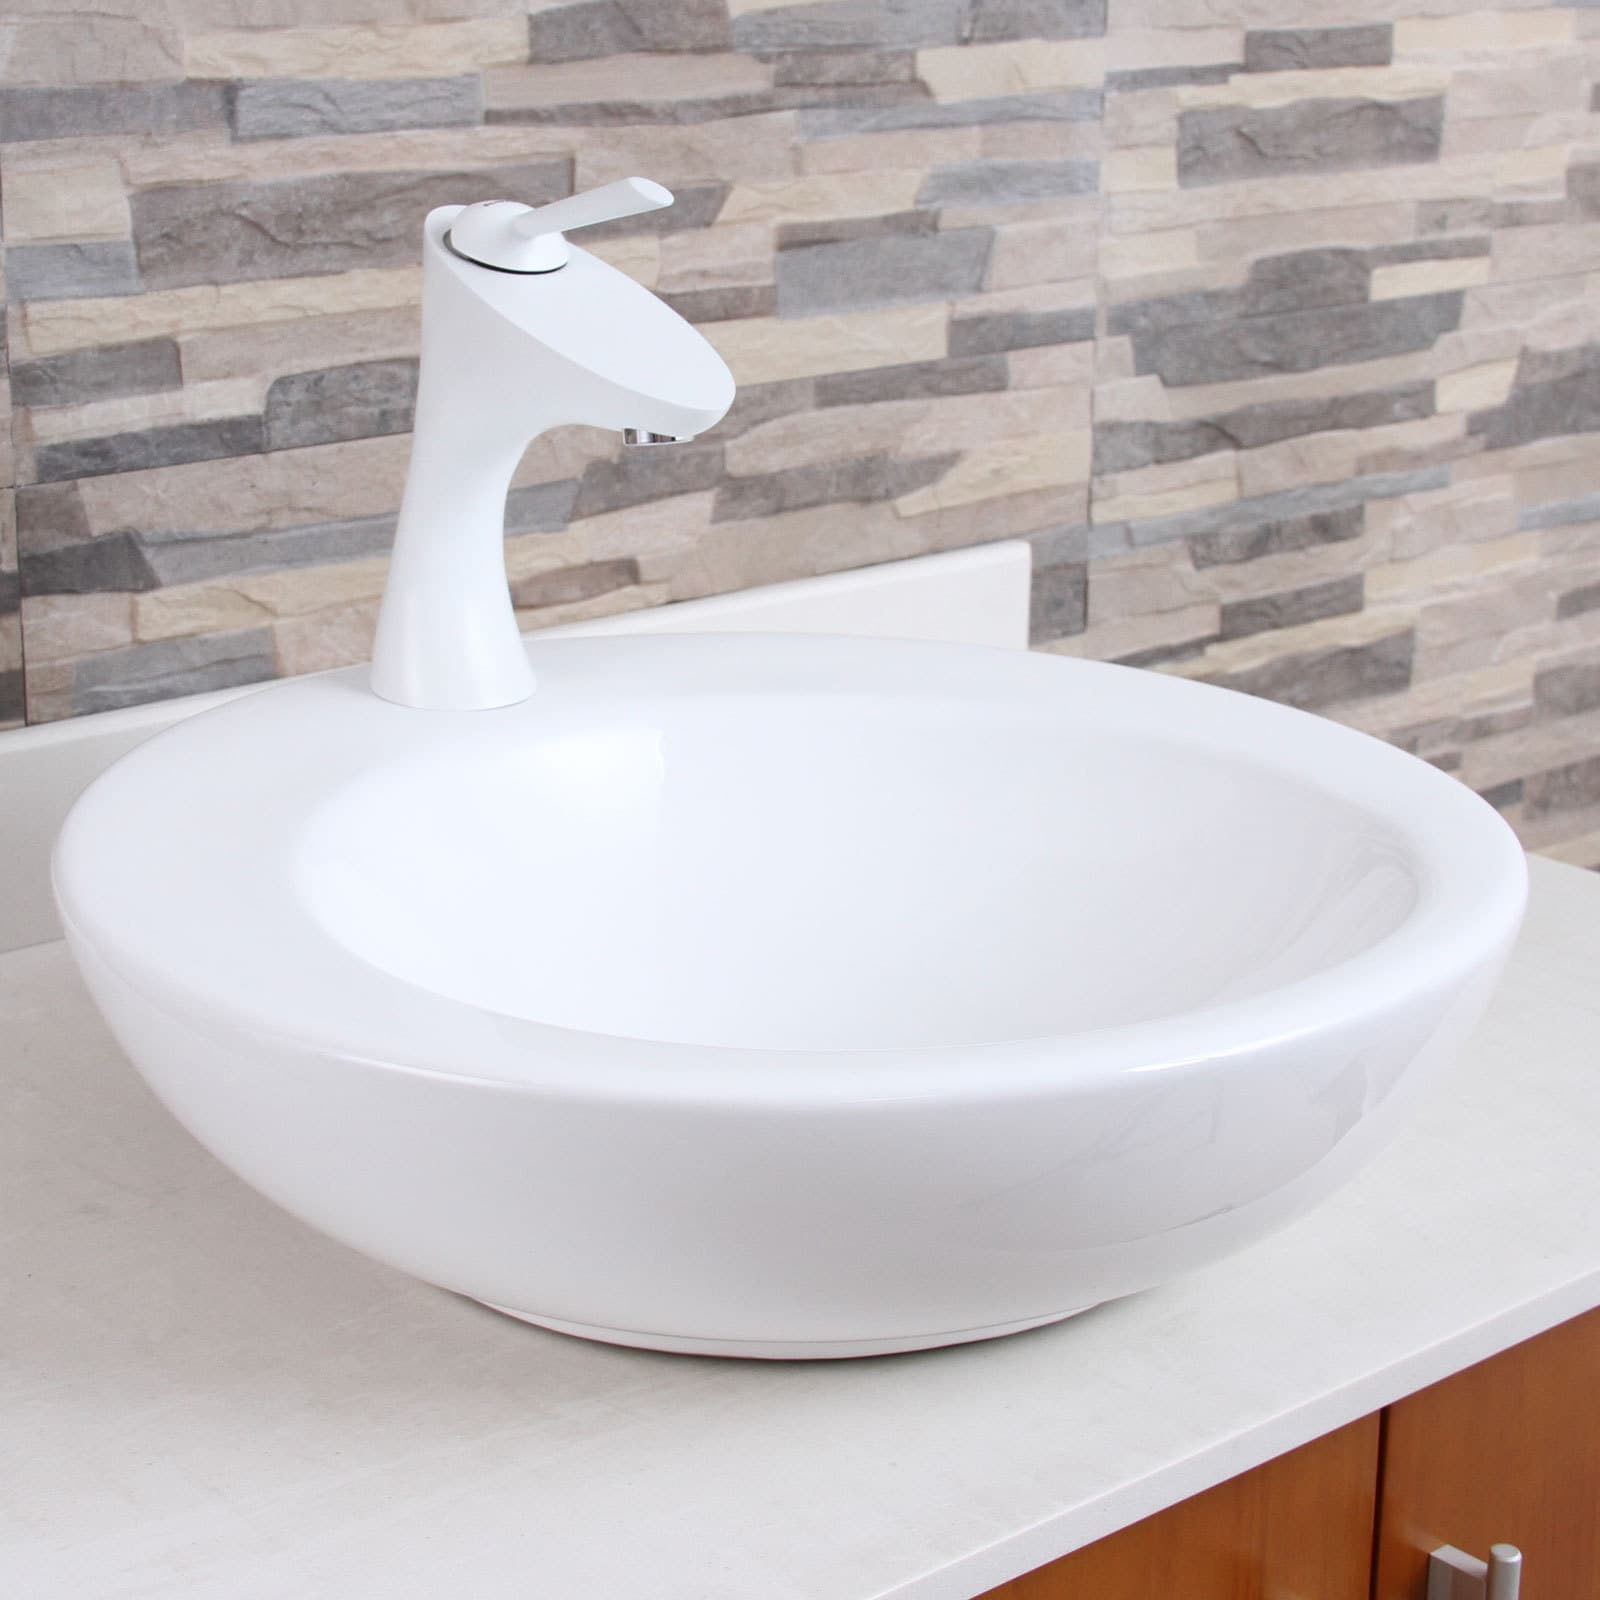 Elimax F662013WH White Bathroom Sink Faucet - Free Shipping Today ...